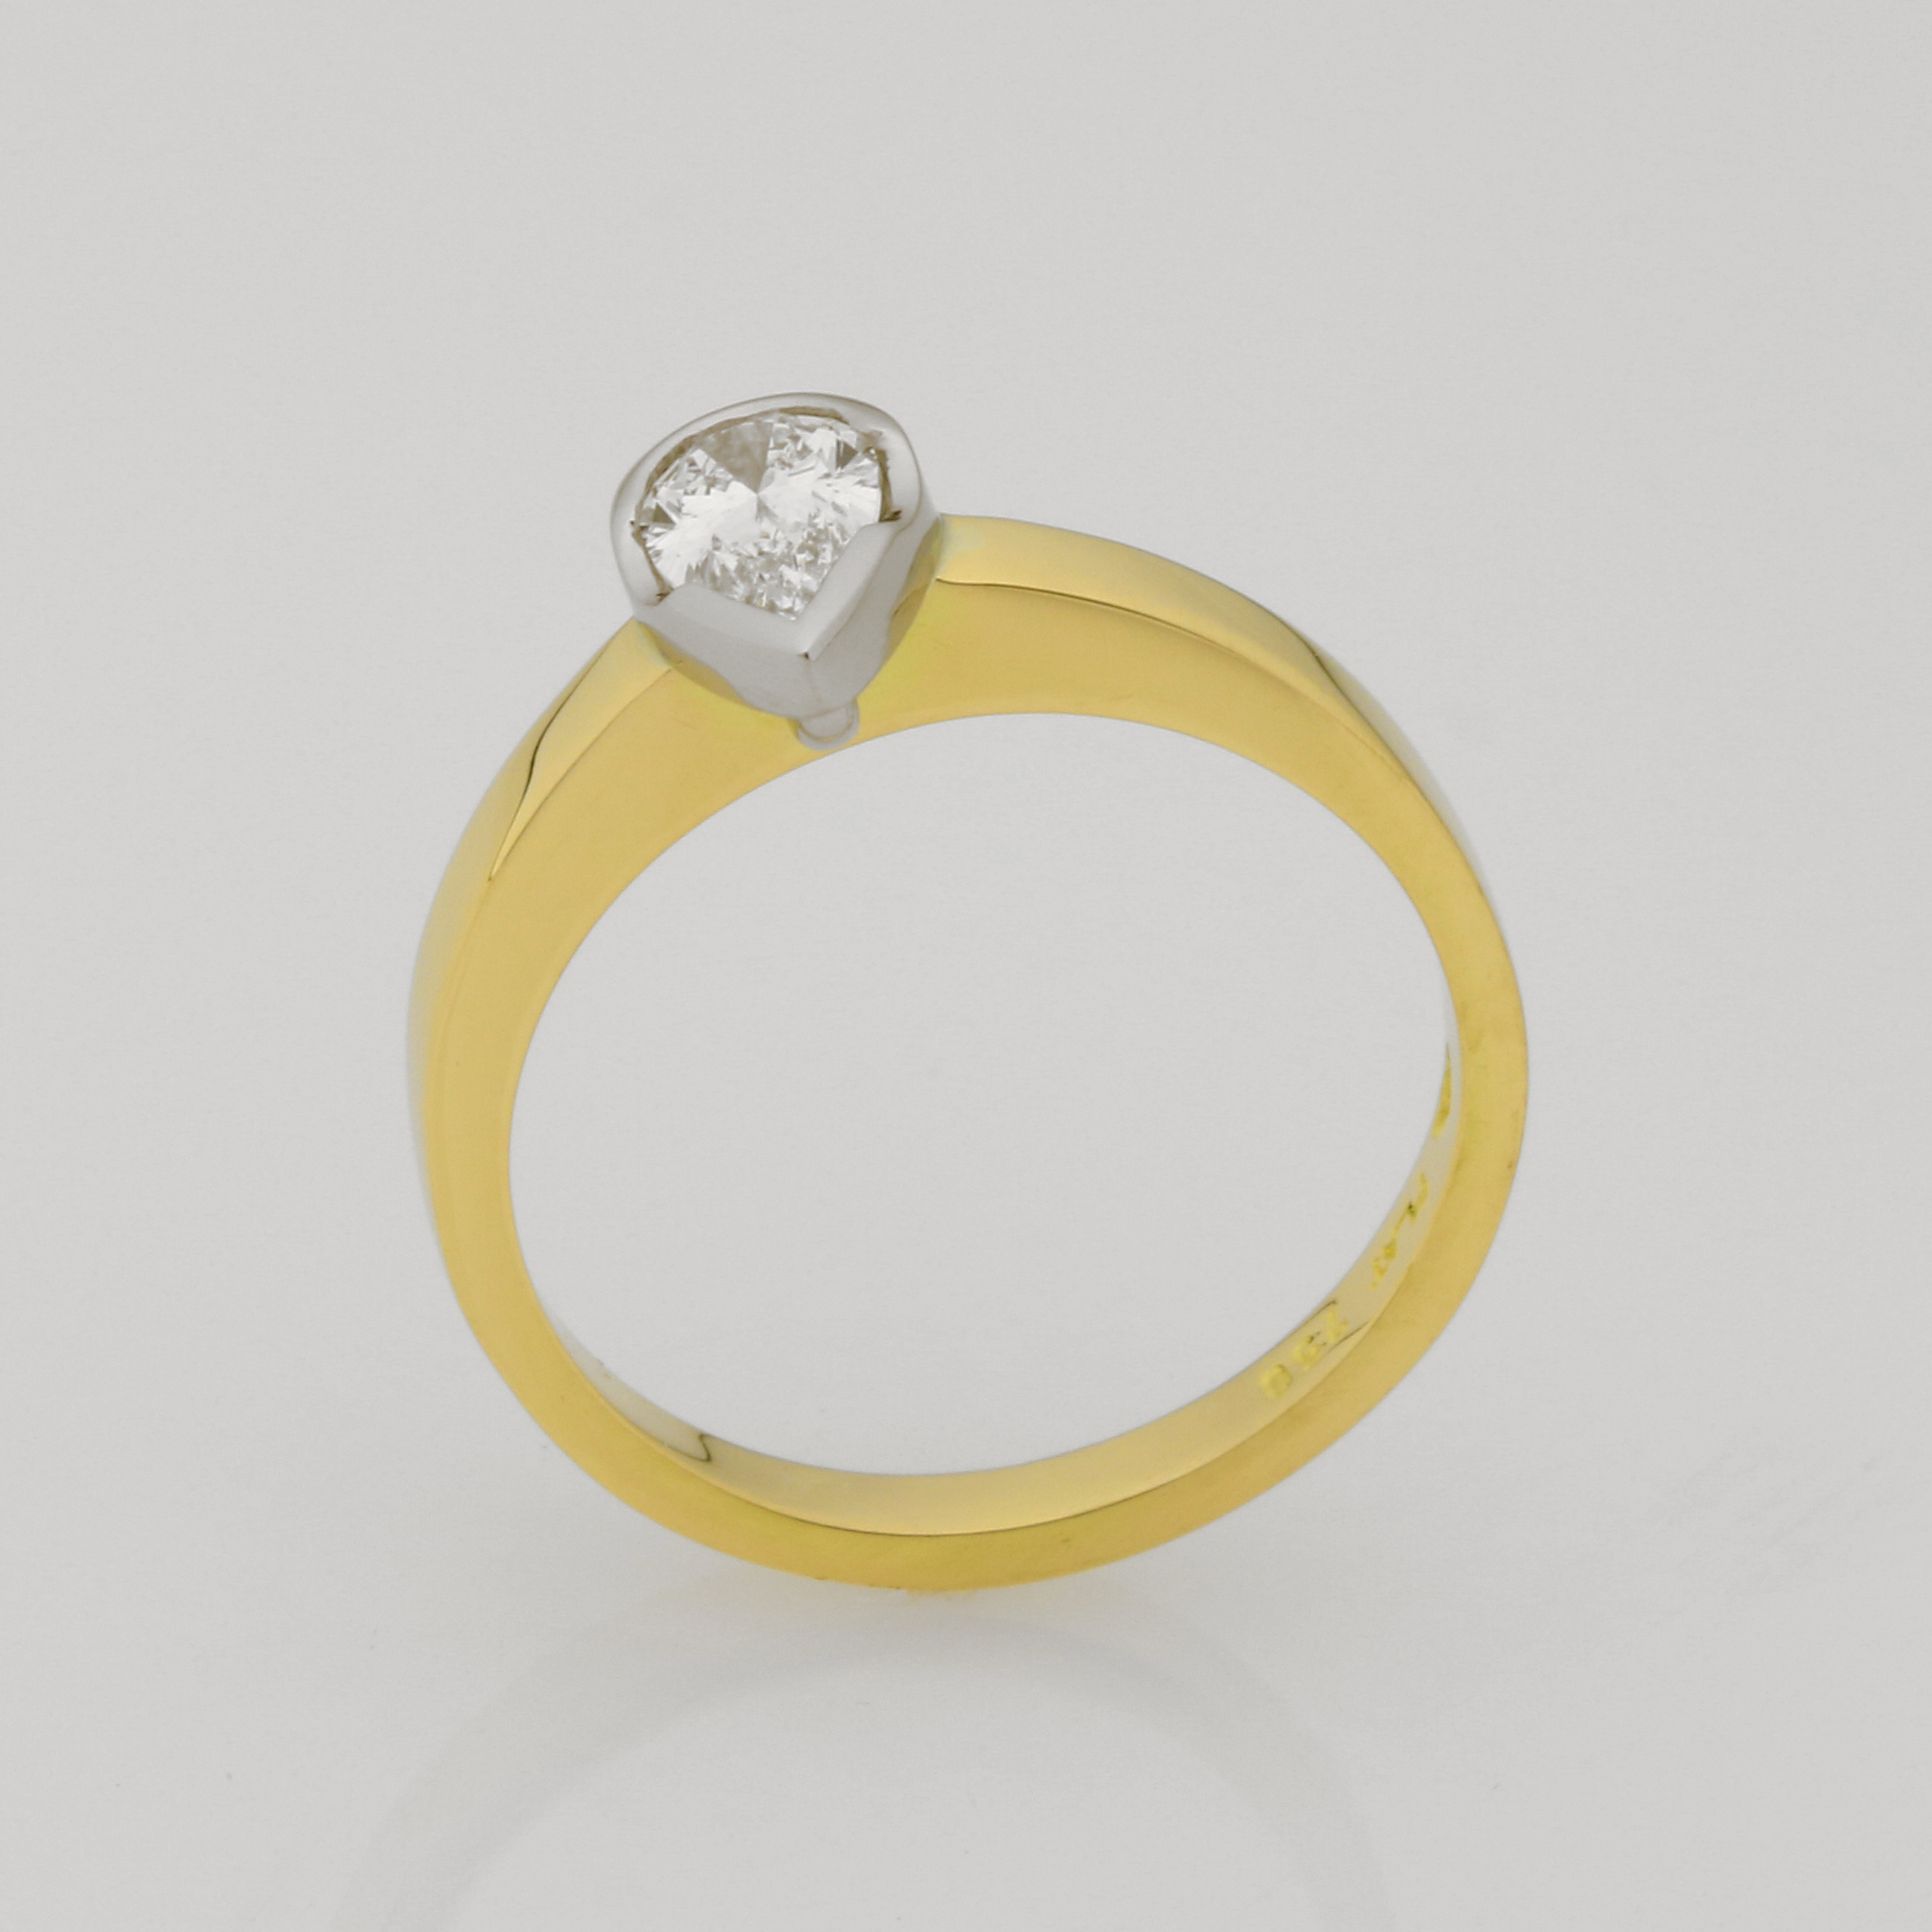 Ladies handmade 18ct yellow gold and platinum diamond ring